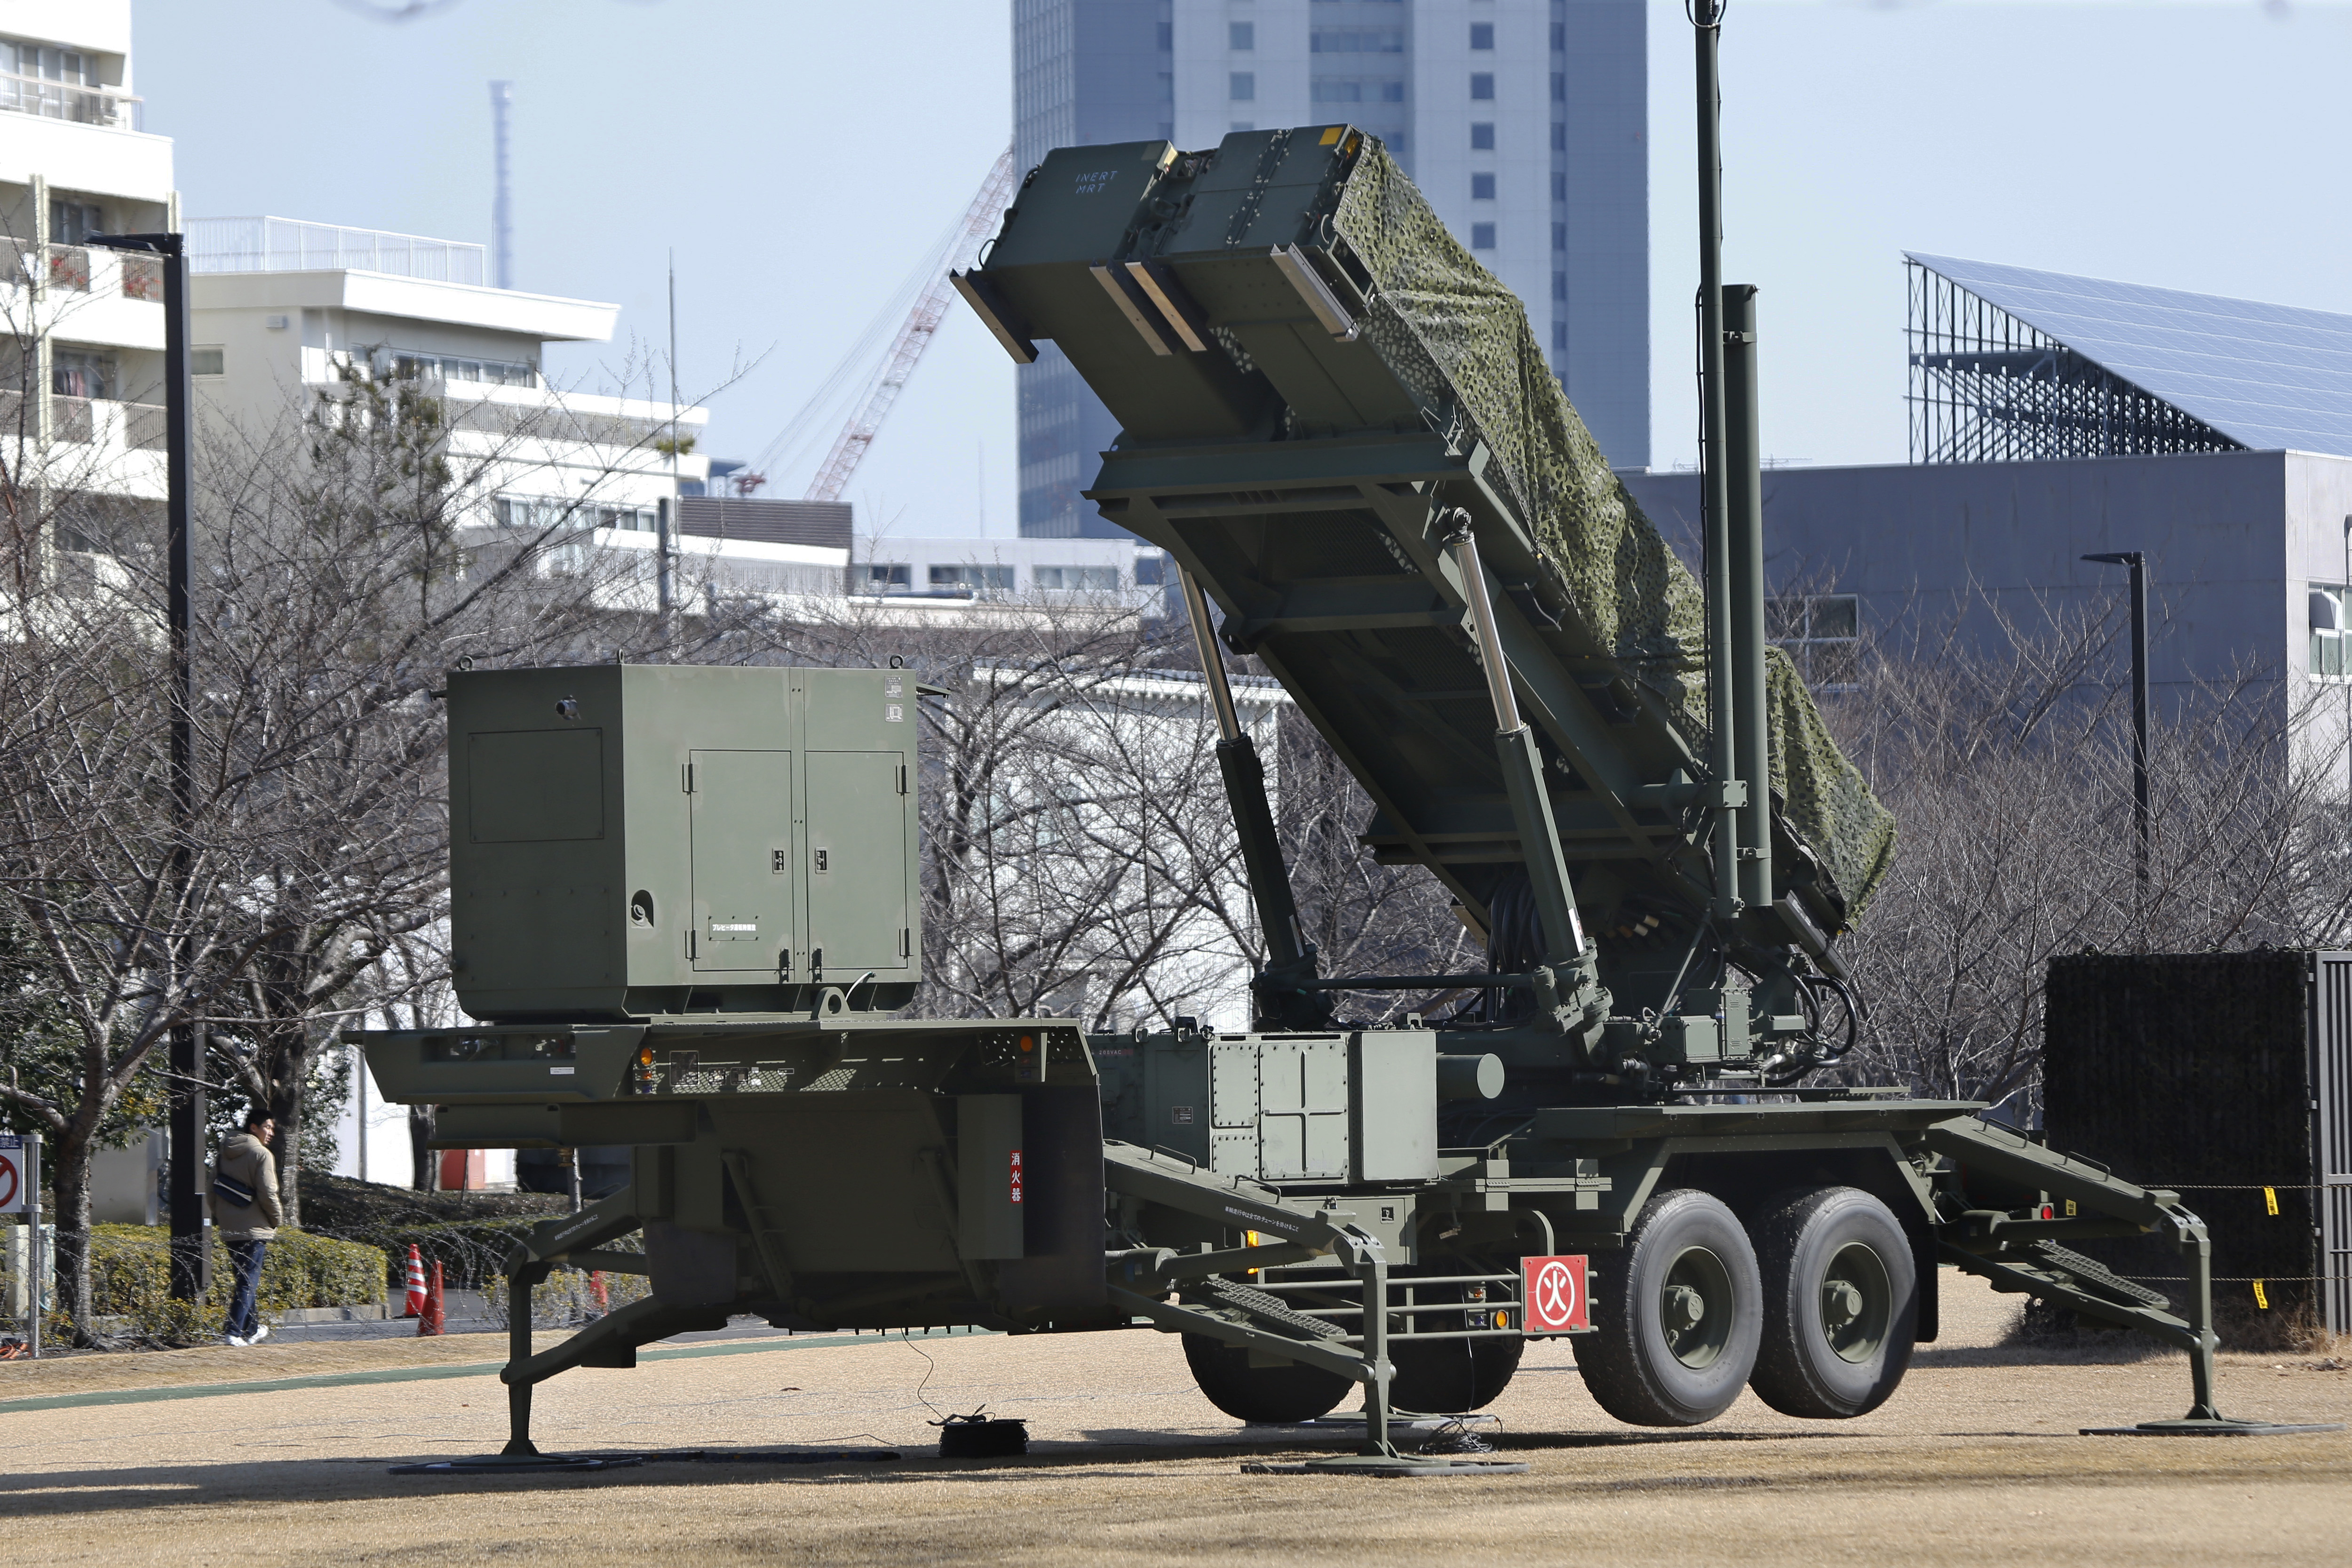 A Self-Defense Forces PAC-3 Patriot missile battery stands at the Defense Ministry in Tokyo on Sunday. | AP